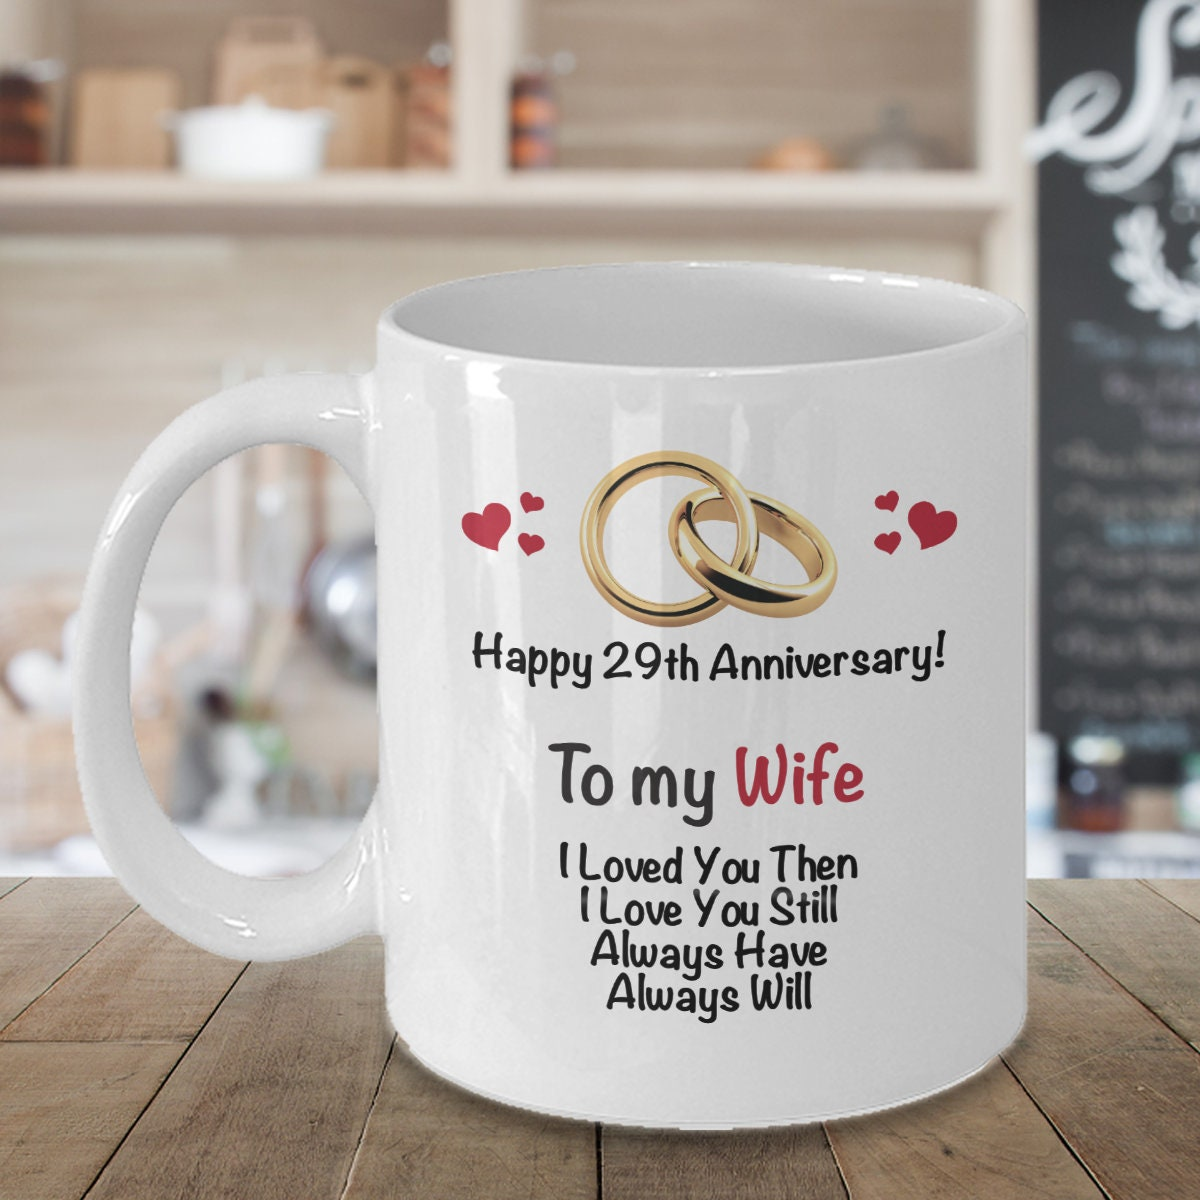 29 Year Wedding Anniversary Gift: 29th Anniversary Gift Ideas For Wife 29th Wedding